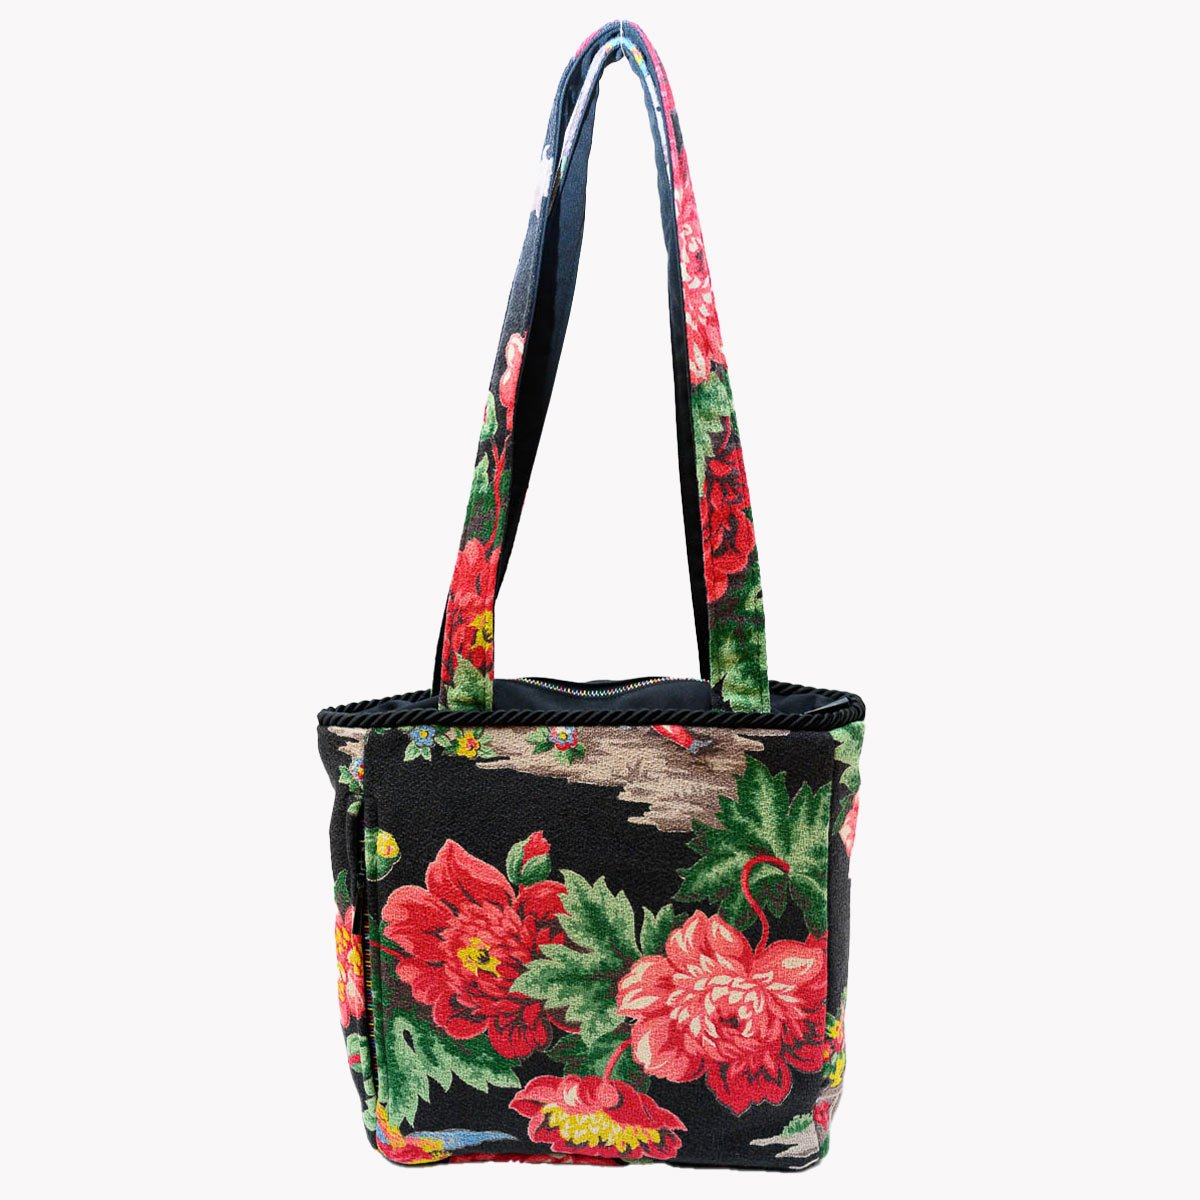 square_bag_peonies_on_black_MLP_6303